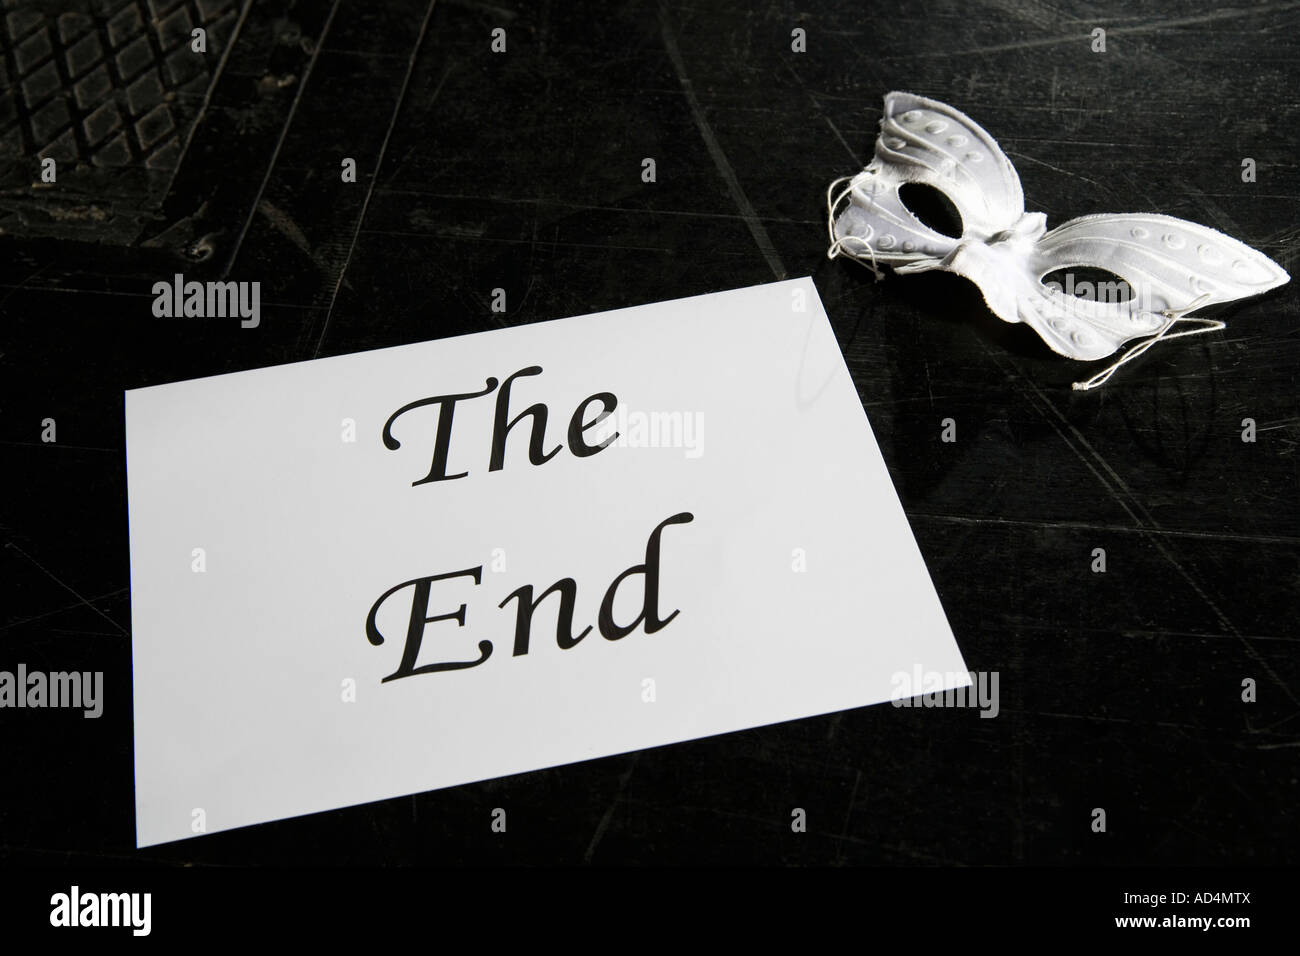 A mask and a sign for 'The End' on a theater stage - Stock Image